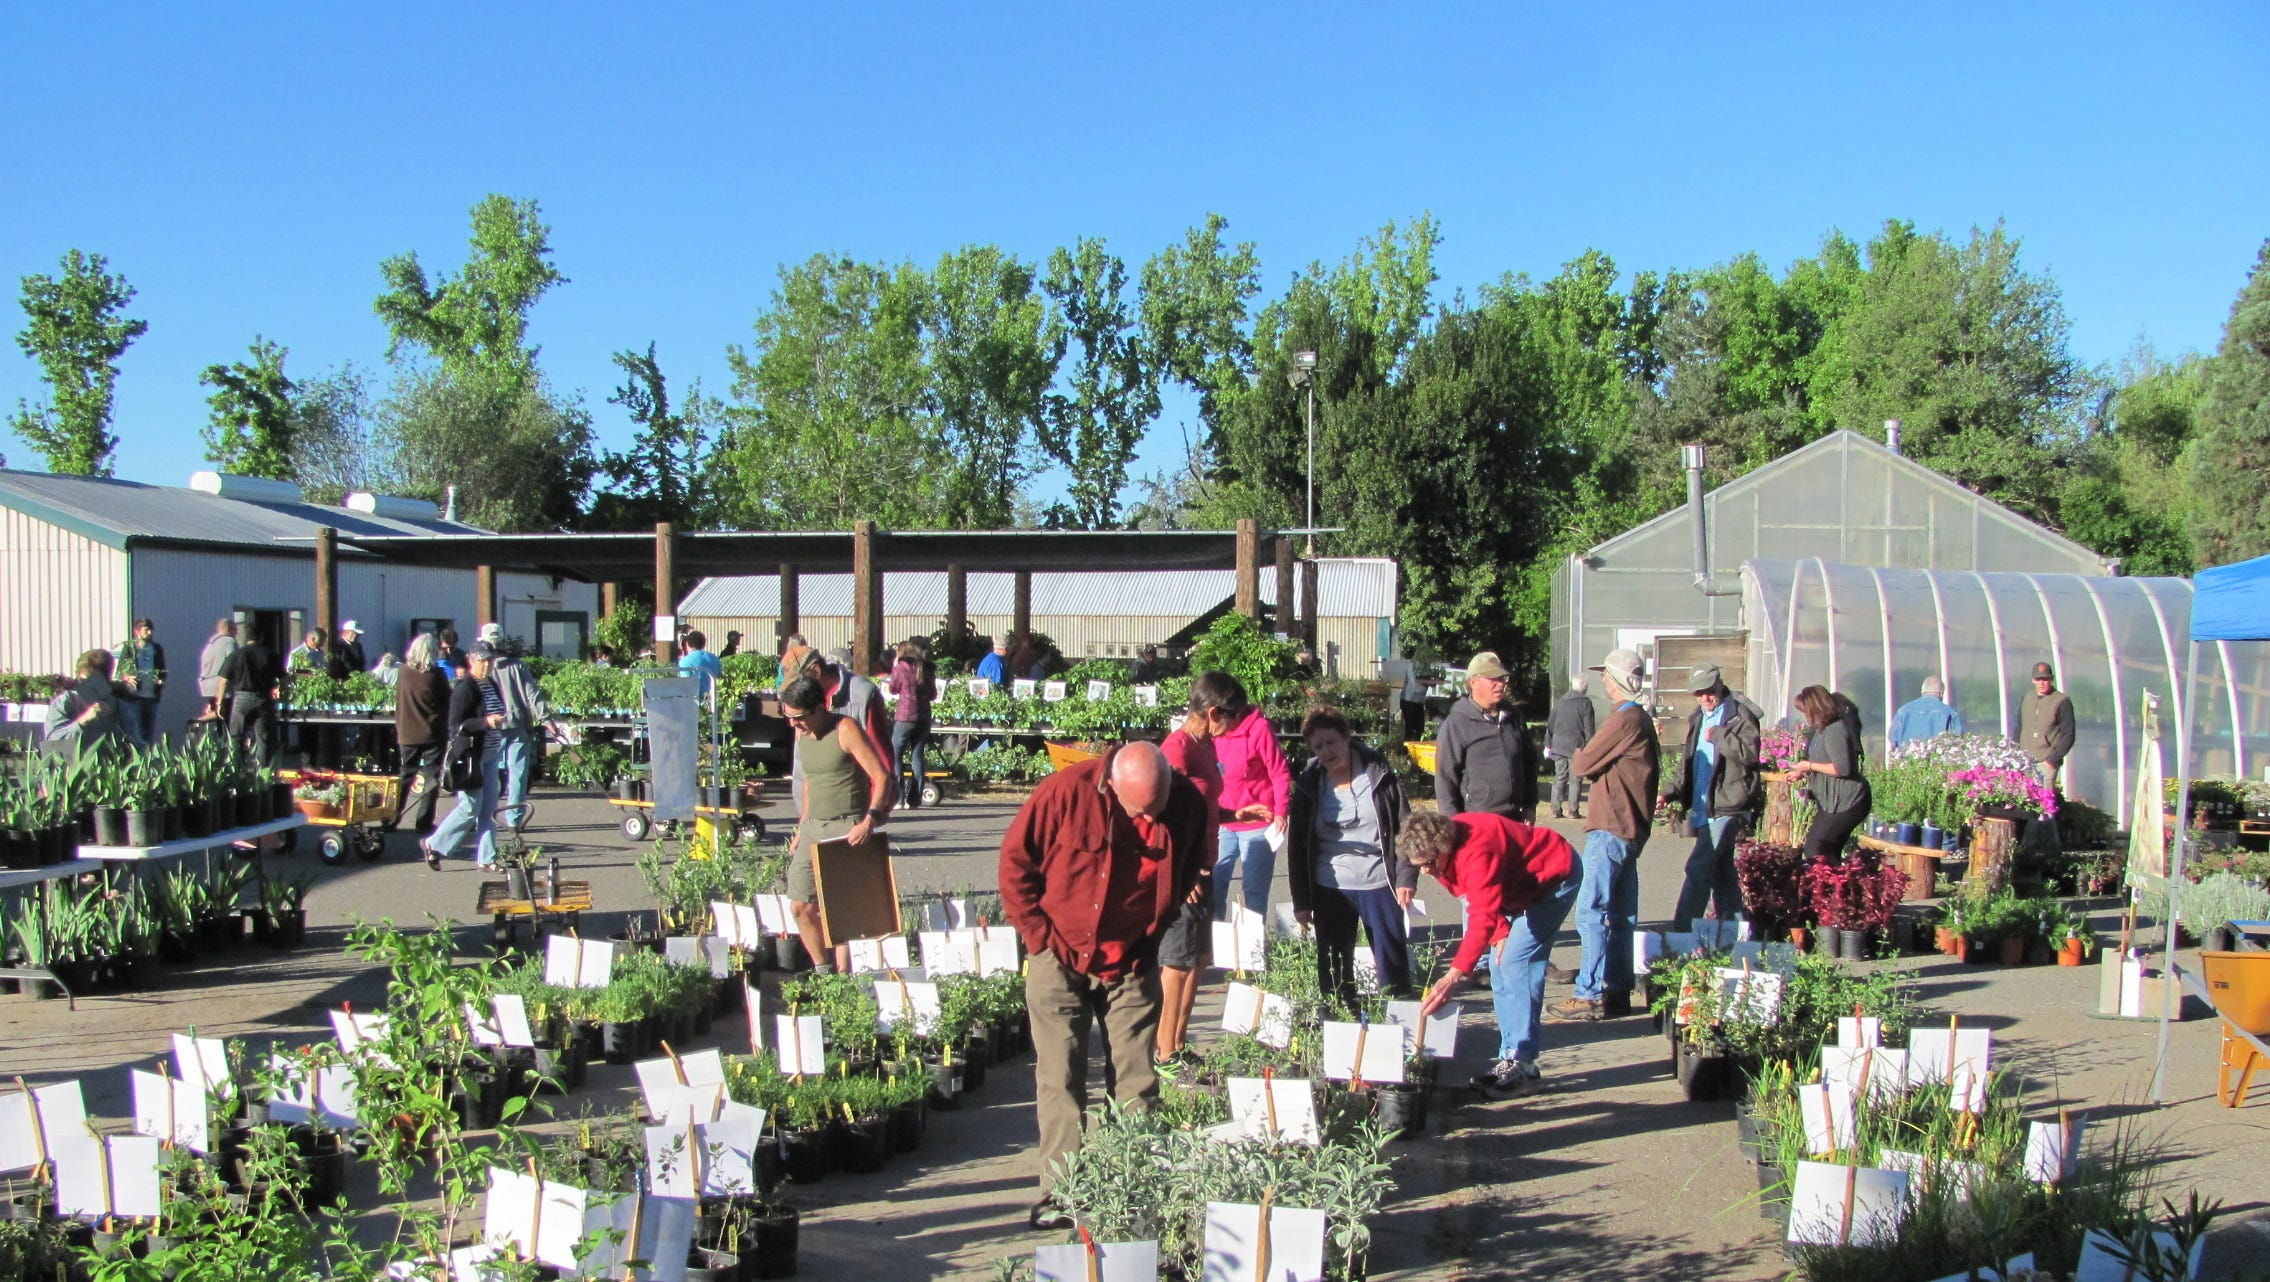 Shasta College Christmas Trees 2020 Volunteers plan plant giveaway to aid recovery after wildfires